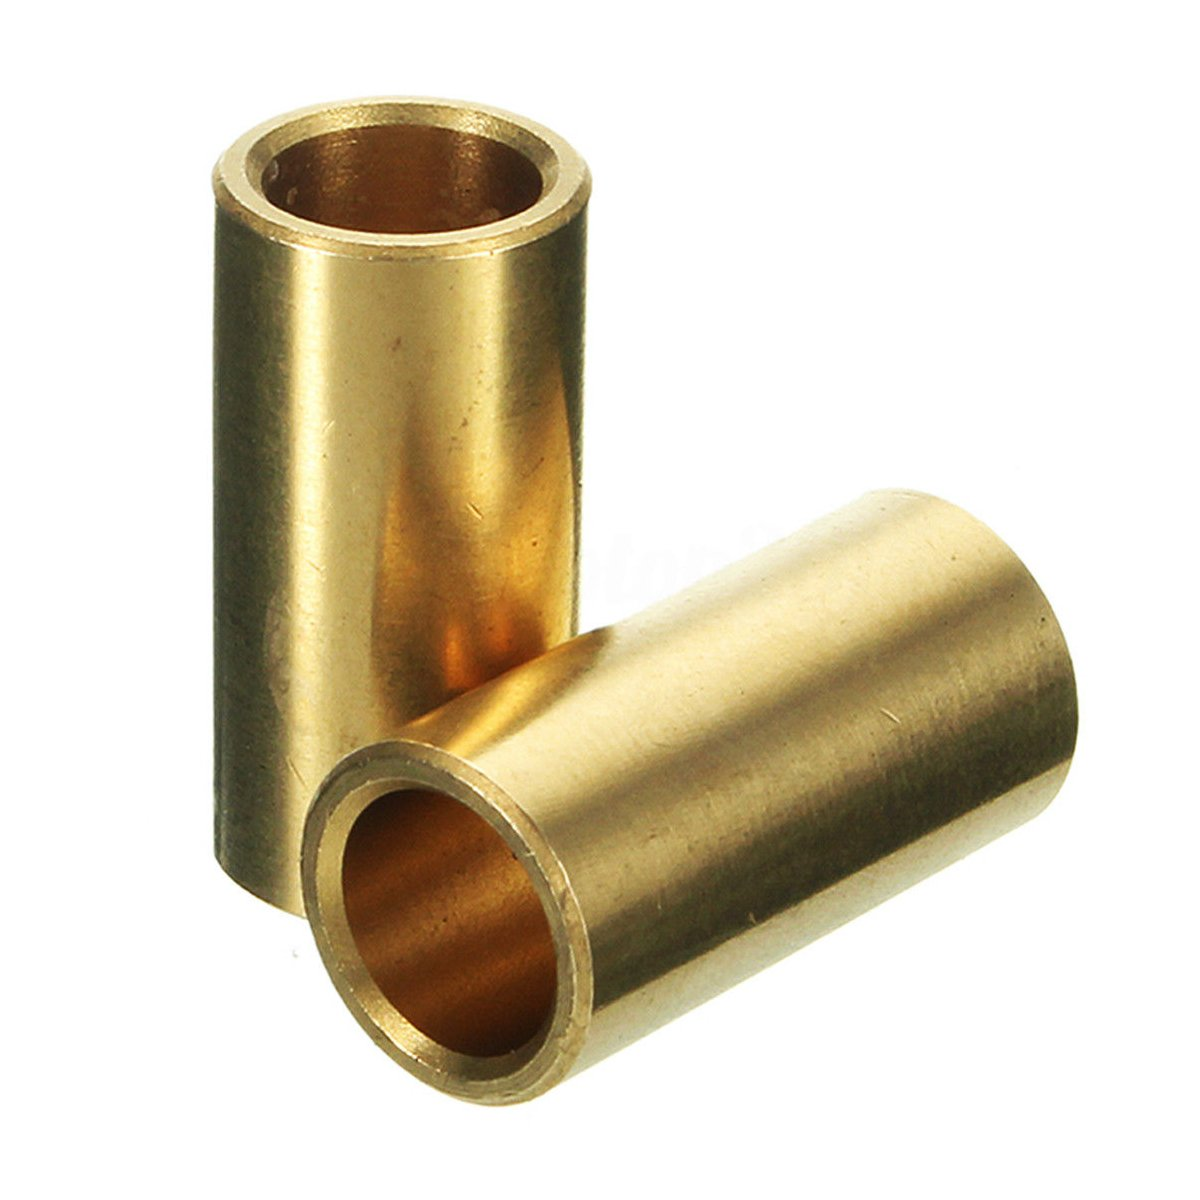 SODIAL 5Pcs Copper 8mm Bearing Bushing Sleeve 3D Printer Slider Accessory 8*11*22mm 139489